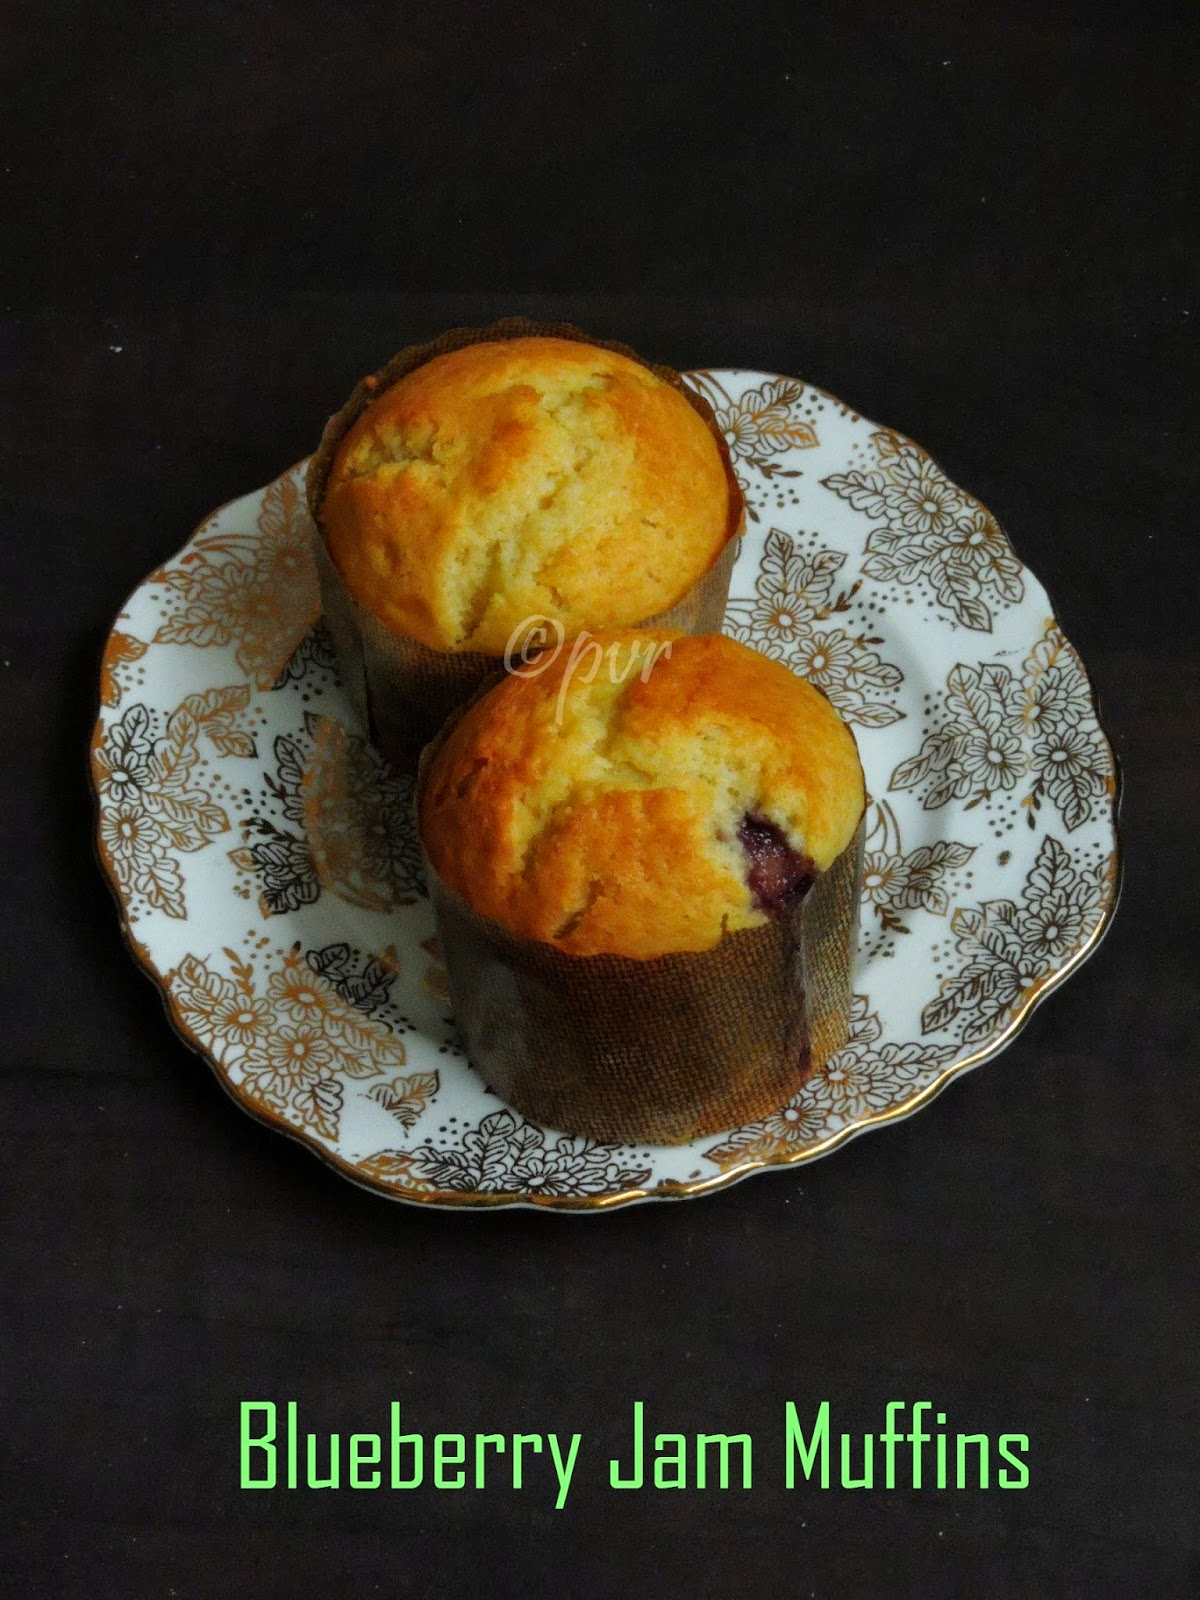 Blueberry Jam filled muffins